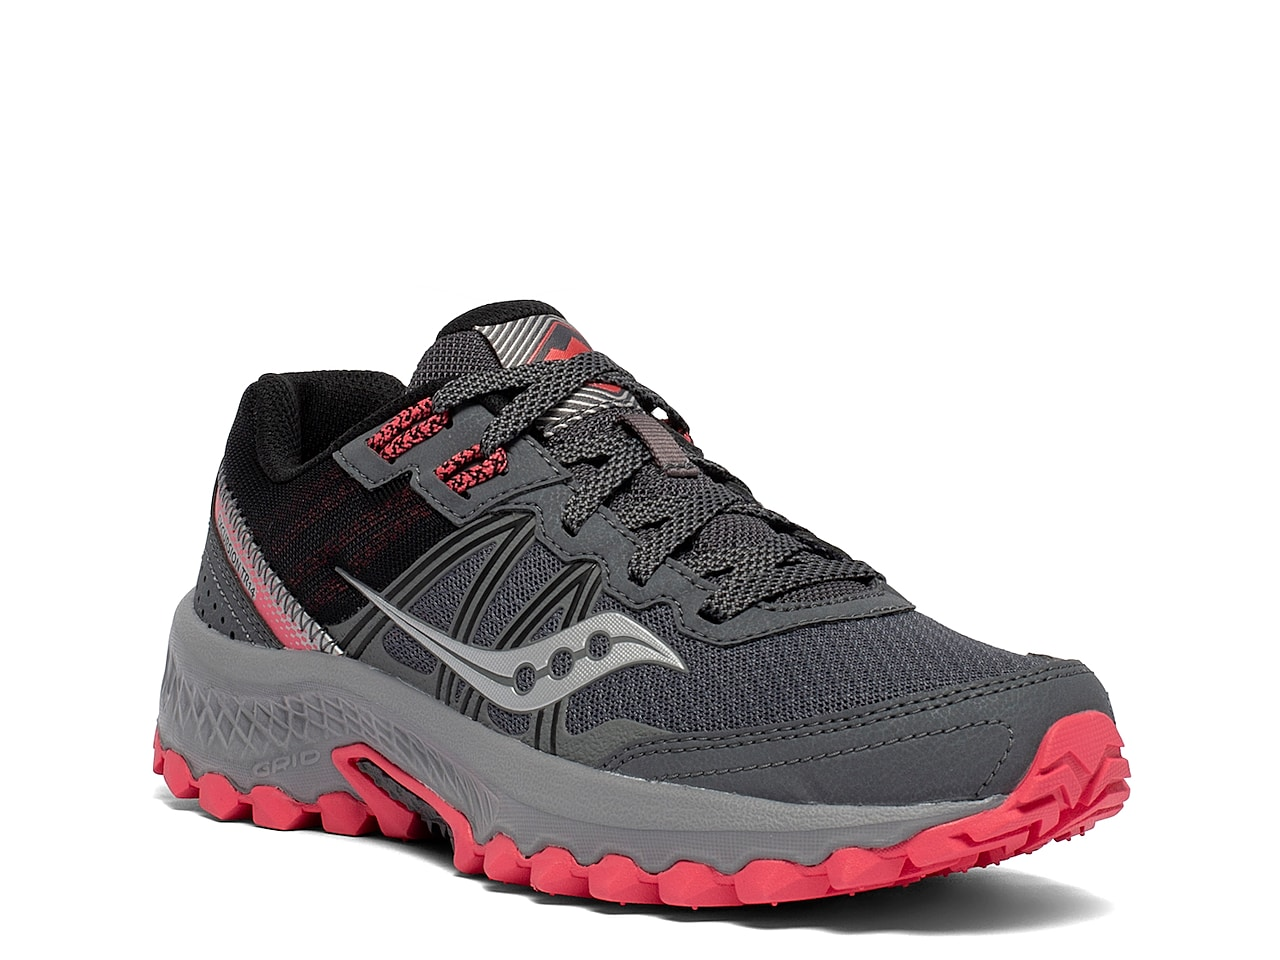 Excursion TR14 Trail Running Shoe - Women's